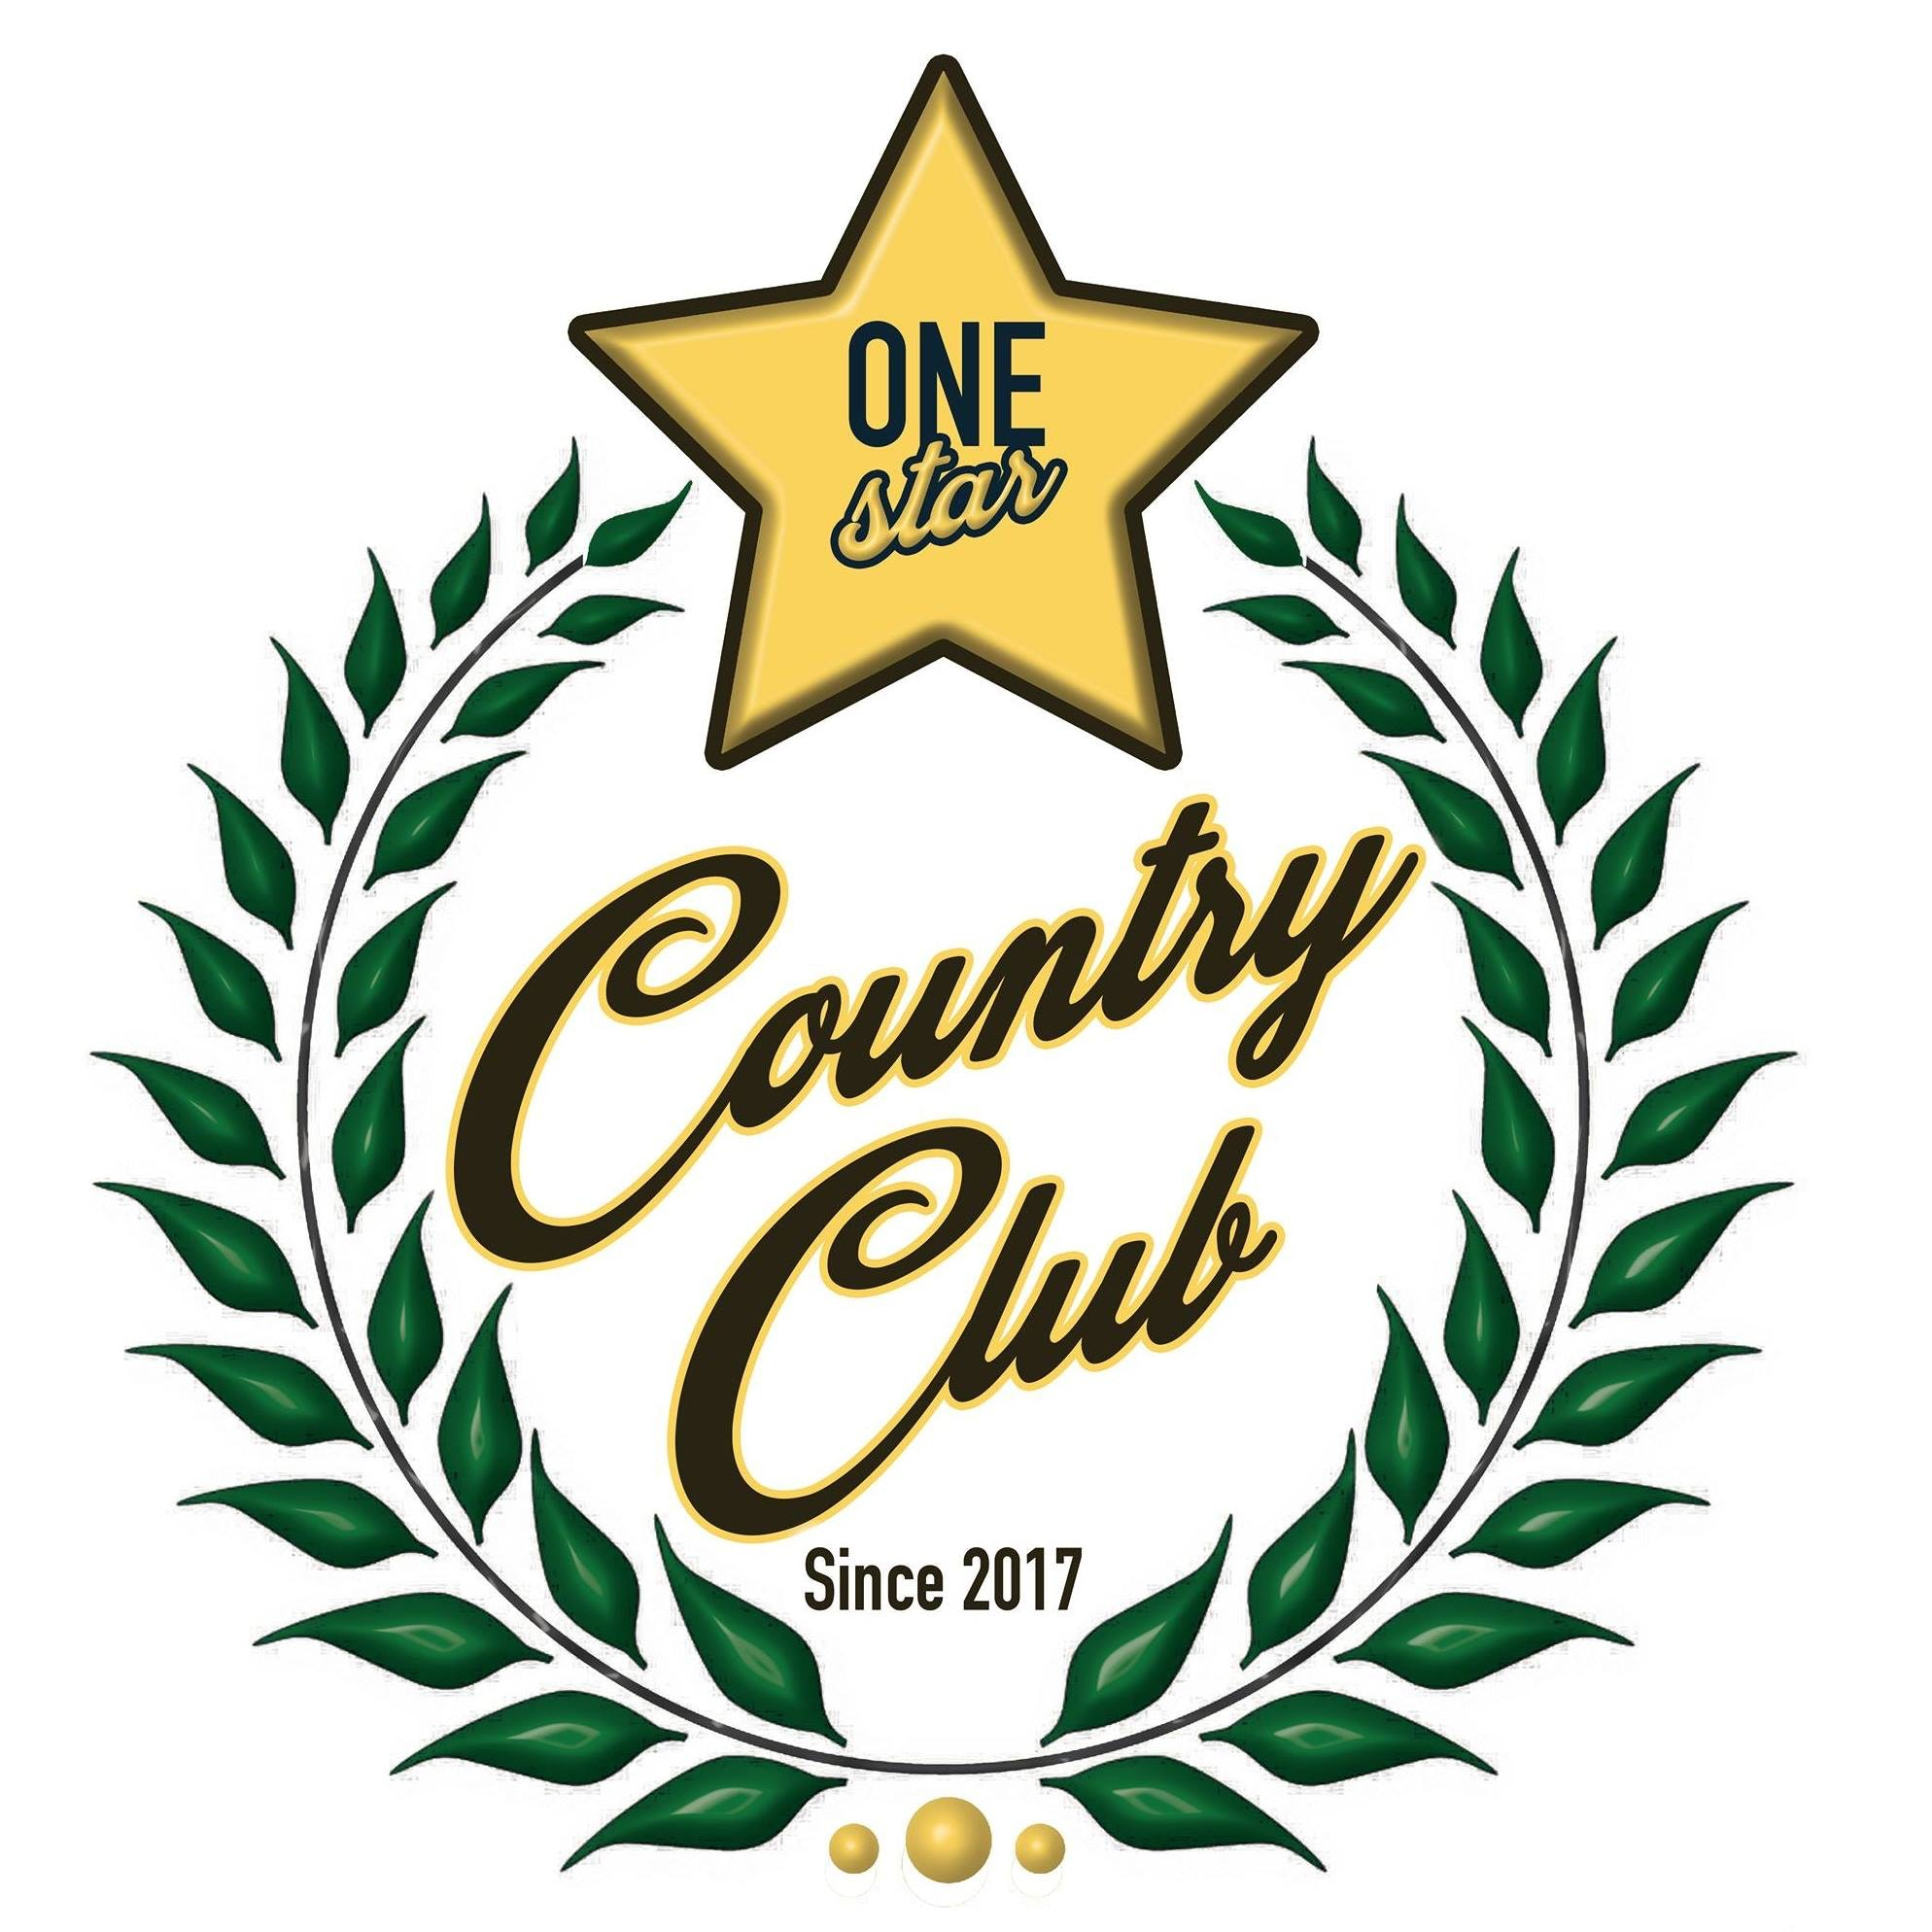 One Star Country Club | VIP NYE Party | Buy Tickets Now